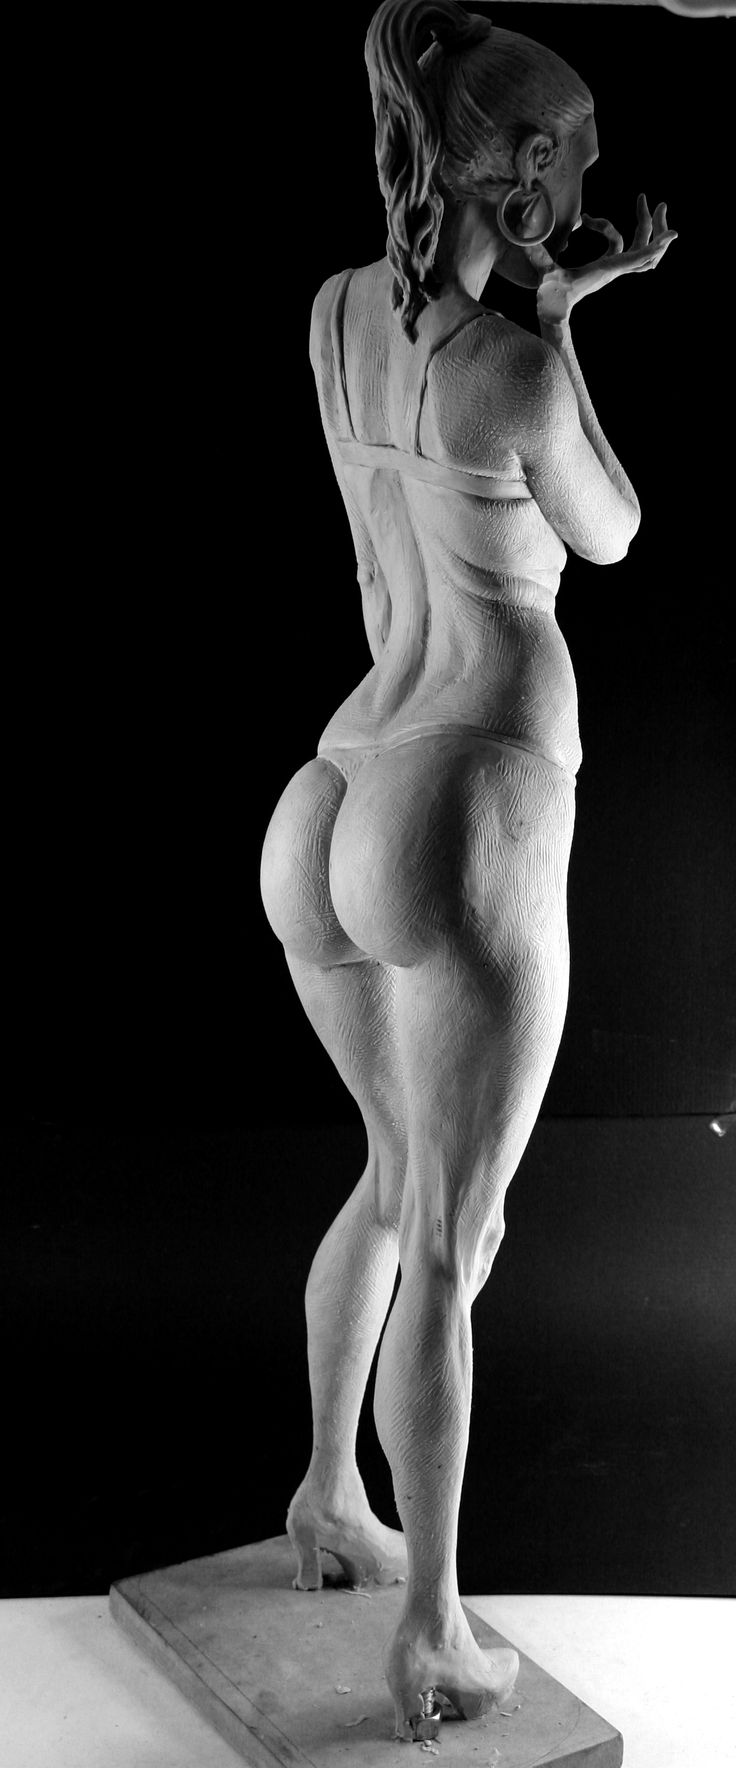 mujer_19_by_rieraescultura_art-d4pq0do.jpg 1,272×3,056 pixels